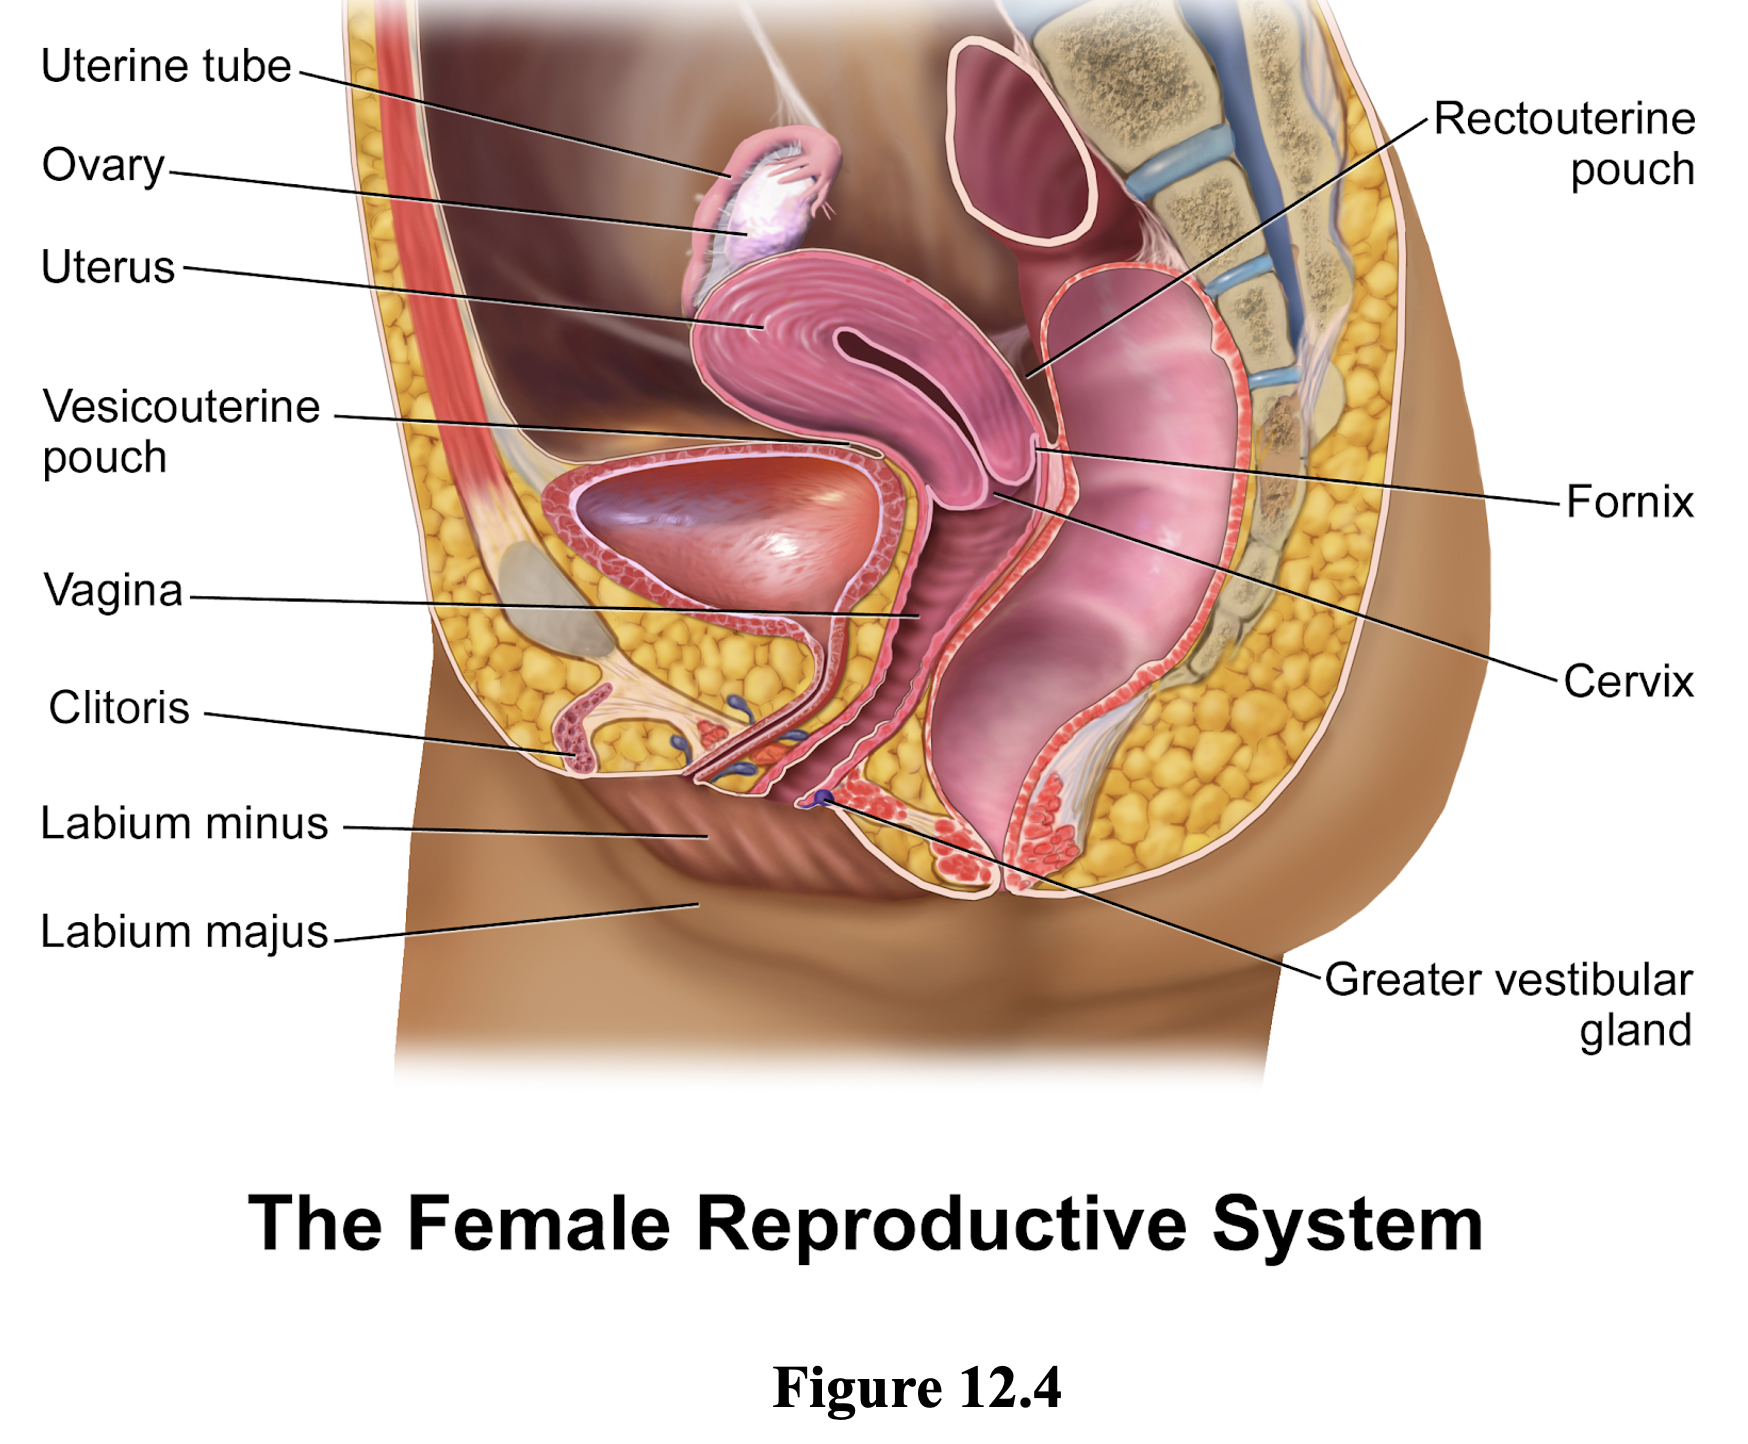 Figure 12.4 shows a lateral view of the female  reproductive systems. Highlighted is the Uterine (fallopian) tube connecting the ovary to the uterus. The small ovary (the organ where eggs are produced). The thick-walled uterus attached to the uterine (fallopian) tube and the vagina. The vagina, tube between the uterus and outside the body. The external female genitalia including labium minus and labium majus. And, the cervix, the opening between the uterus and the vagina.